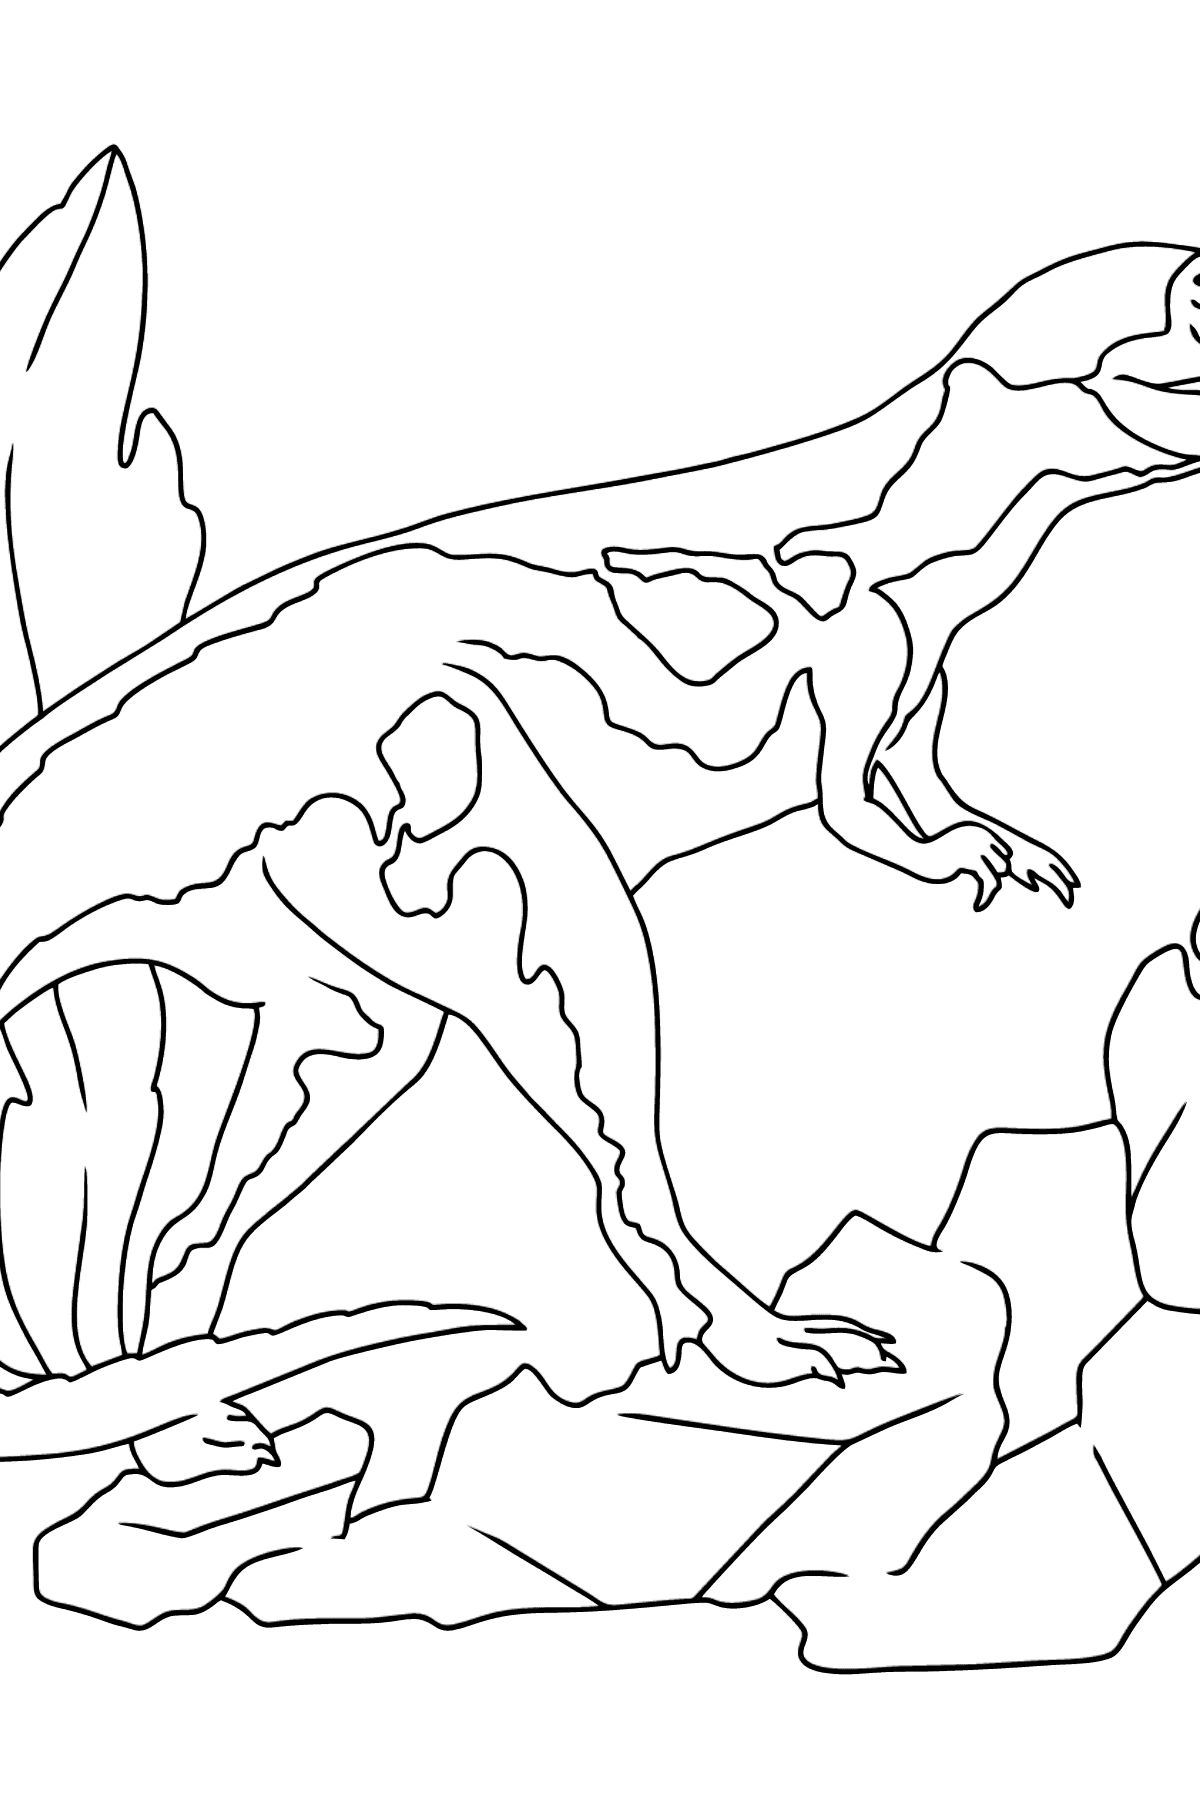 Tyrannosaurus Coloring Page - Coloring Pages for Kids